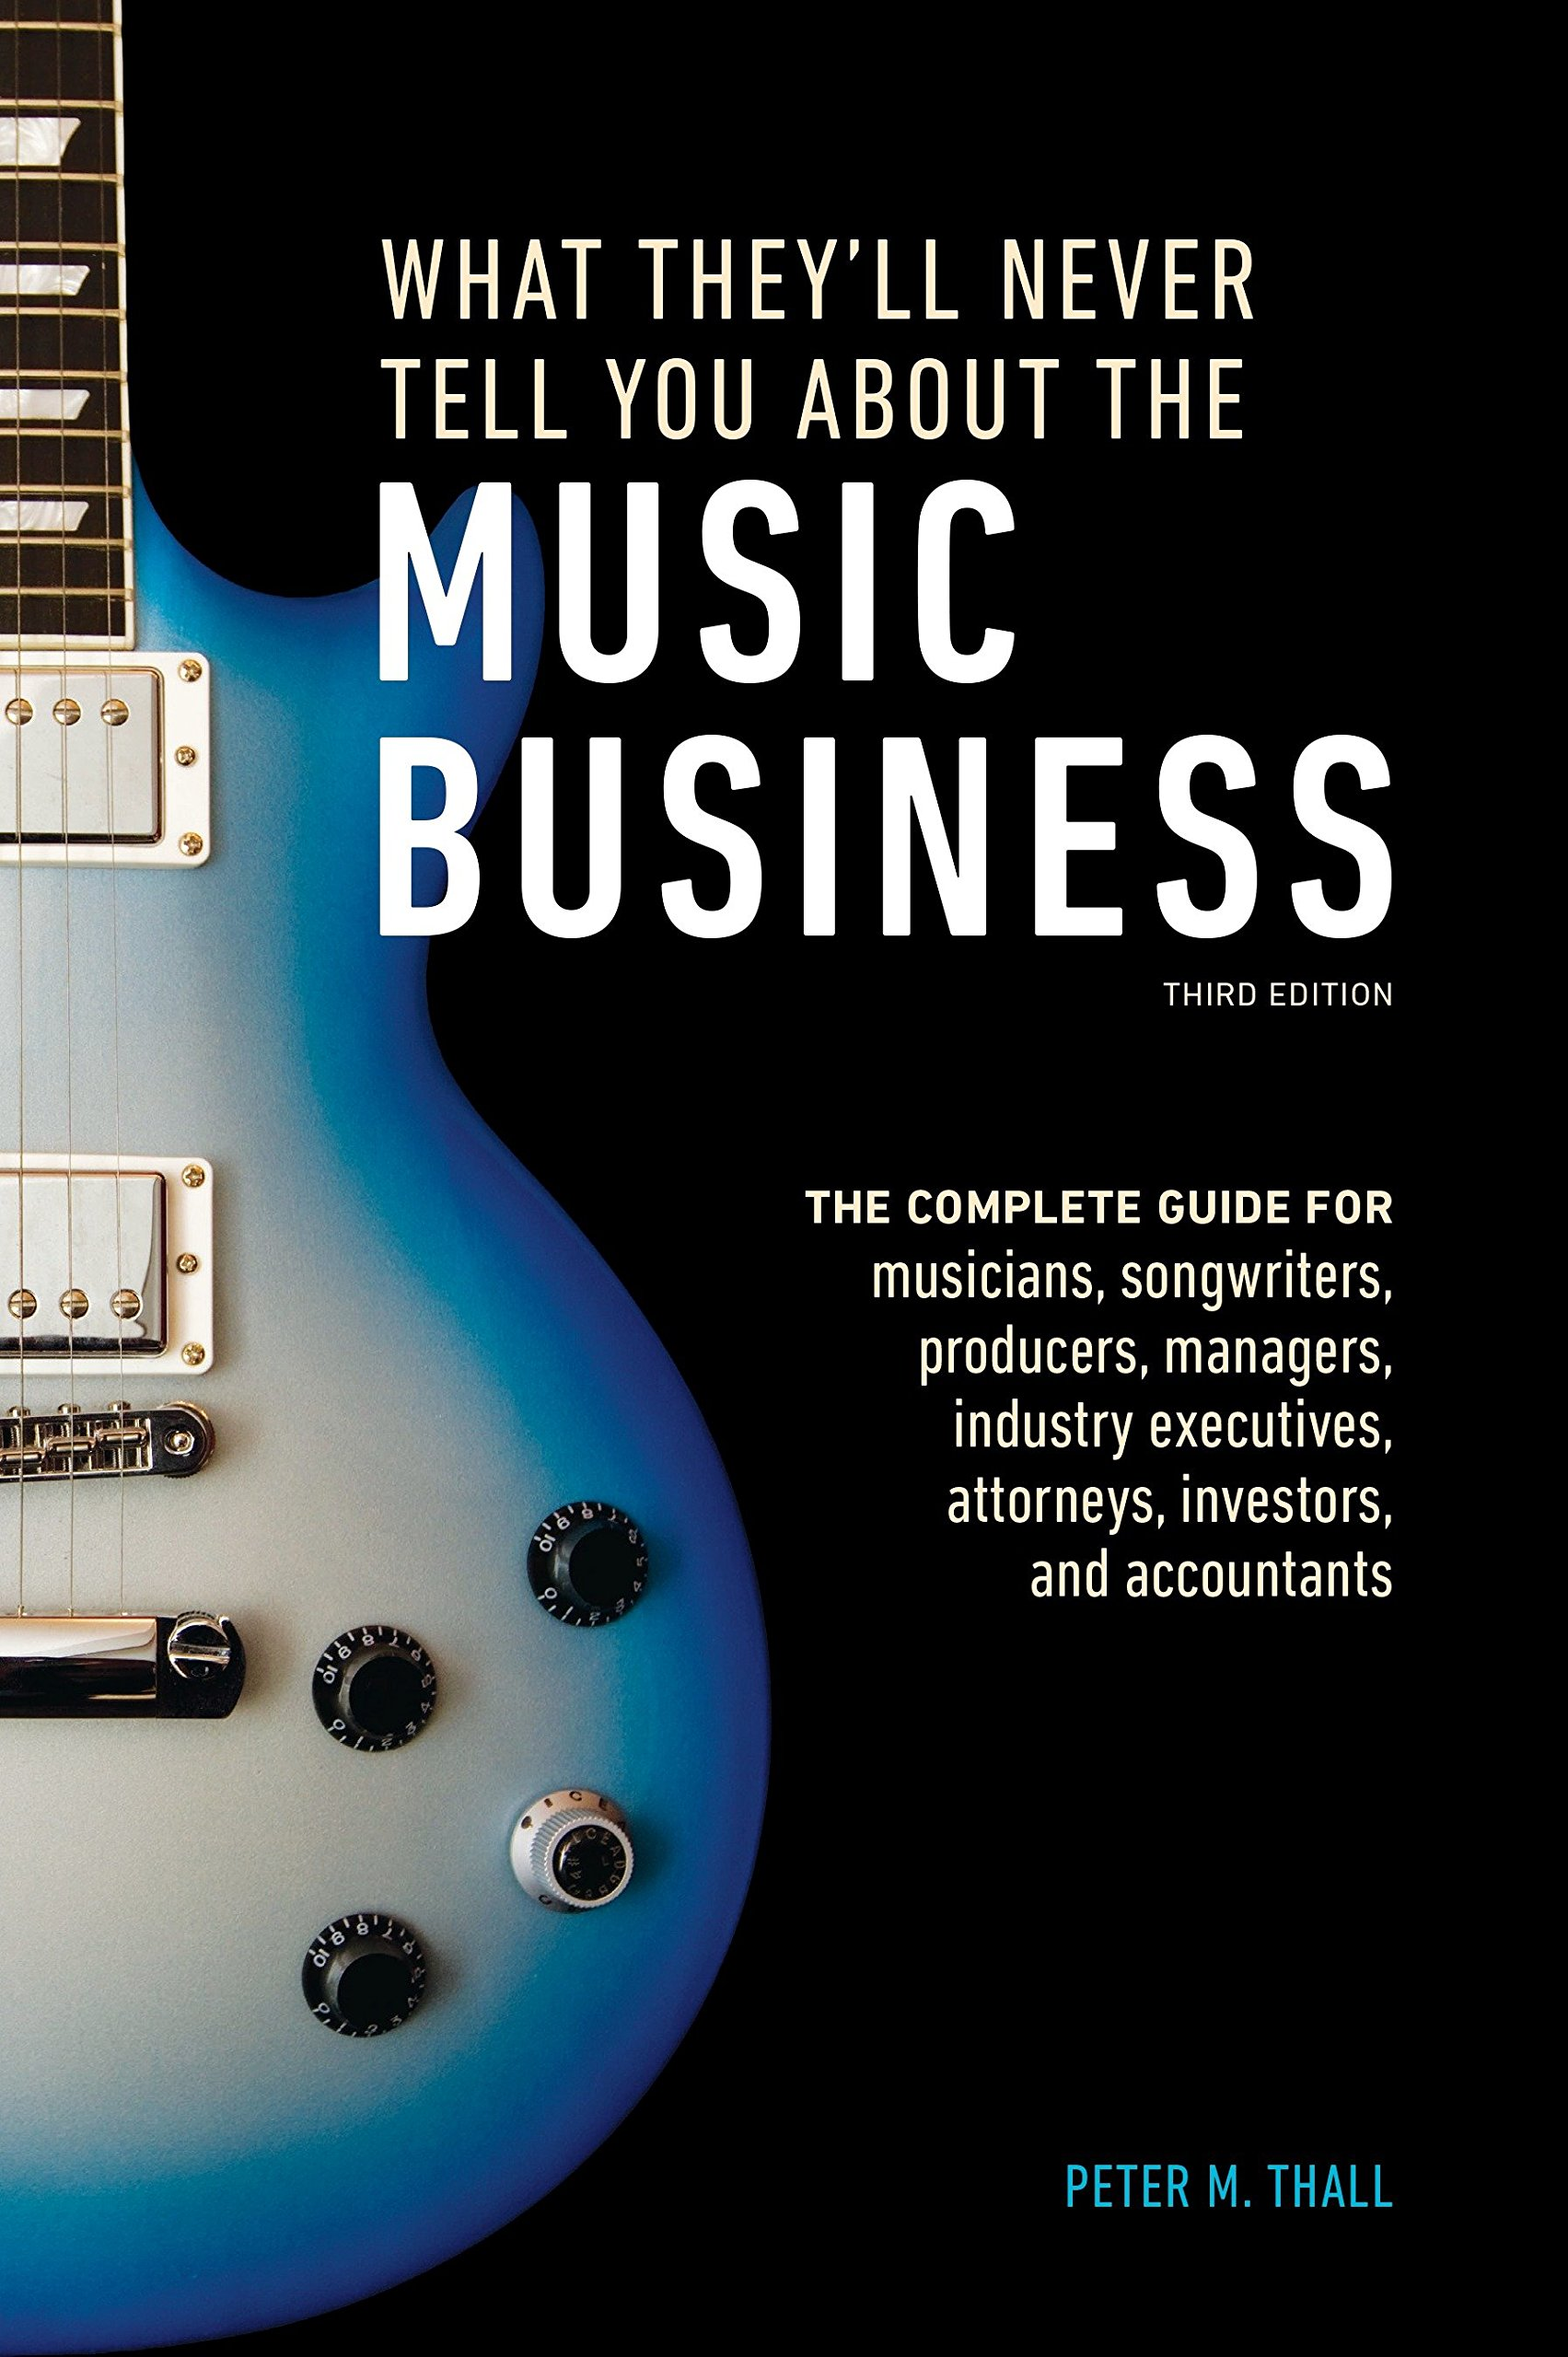 4a1f24158 Amazon.com: What They'll Never Tell You About the Music Business, Third  Edition: The Complete Guide for Musicians, Songwriters, Producers,  Managers, ...